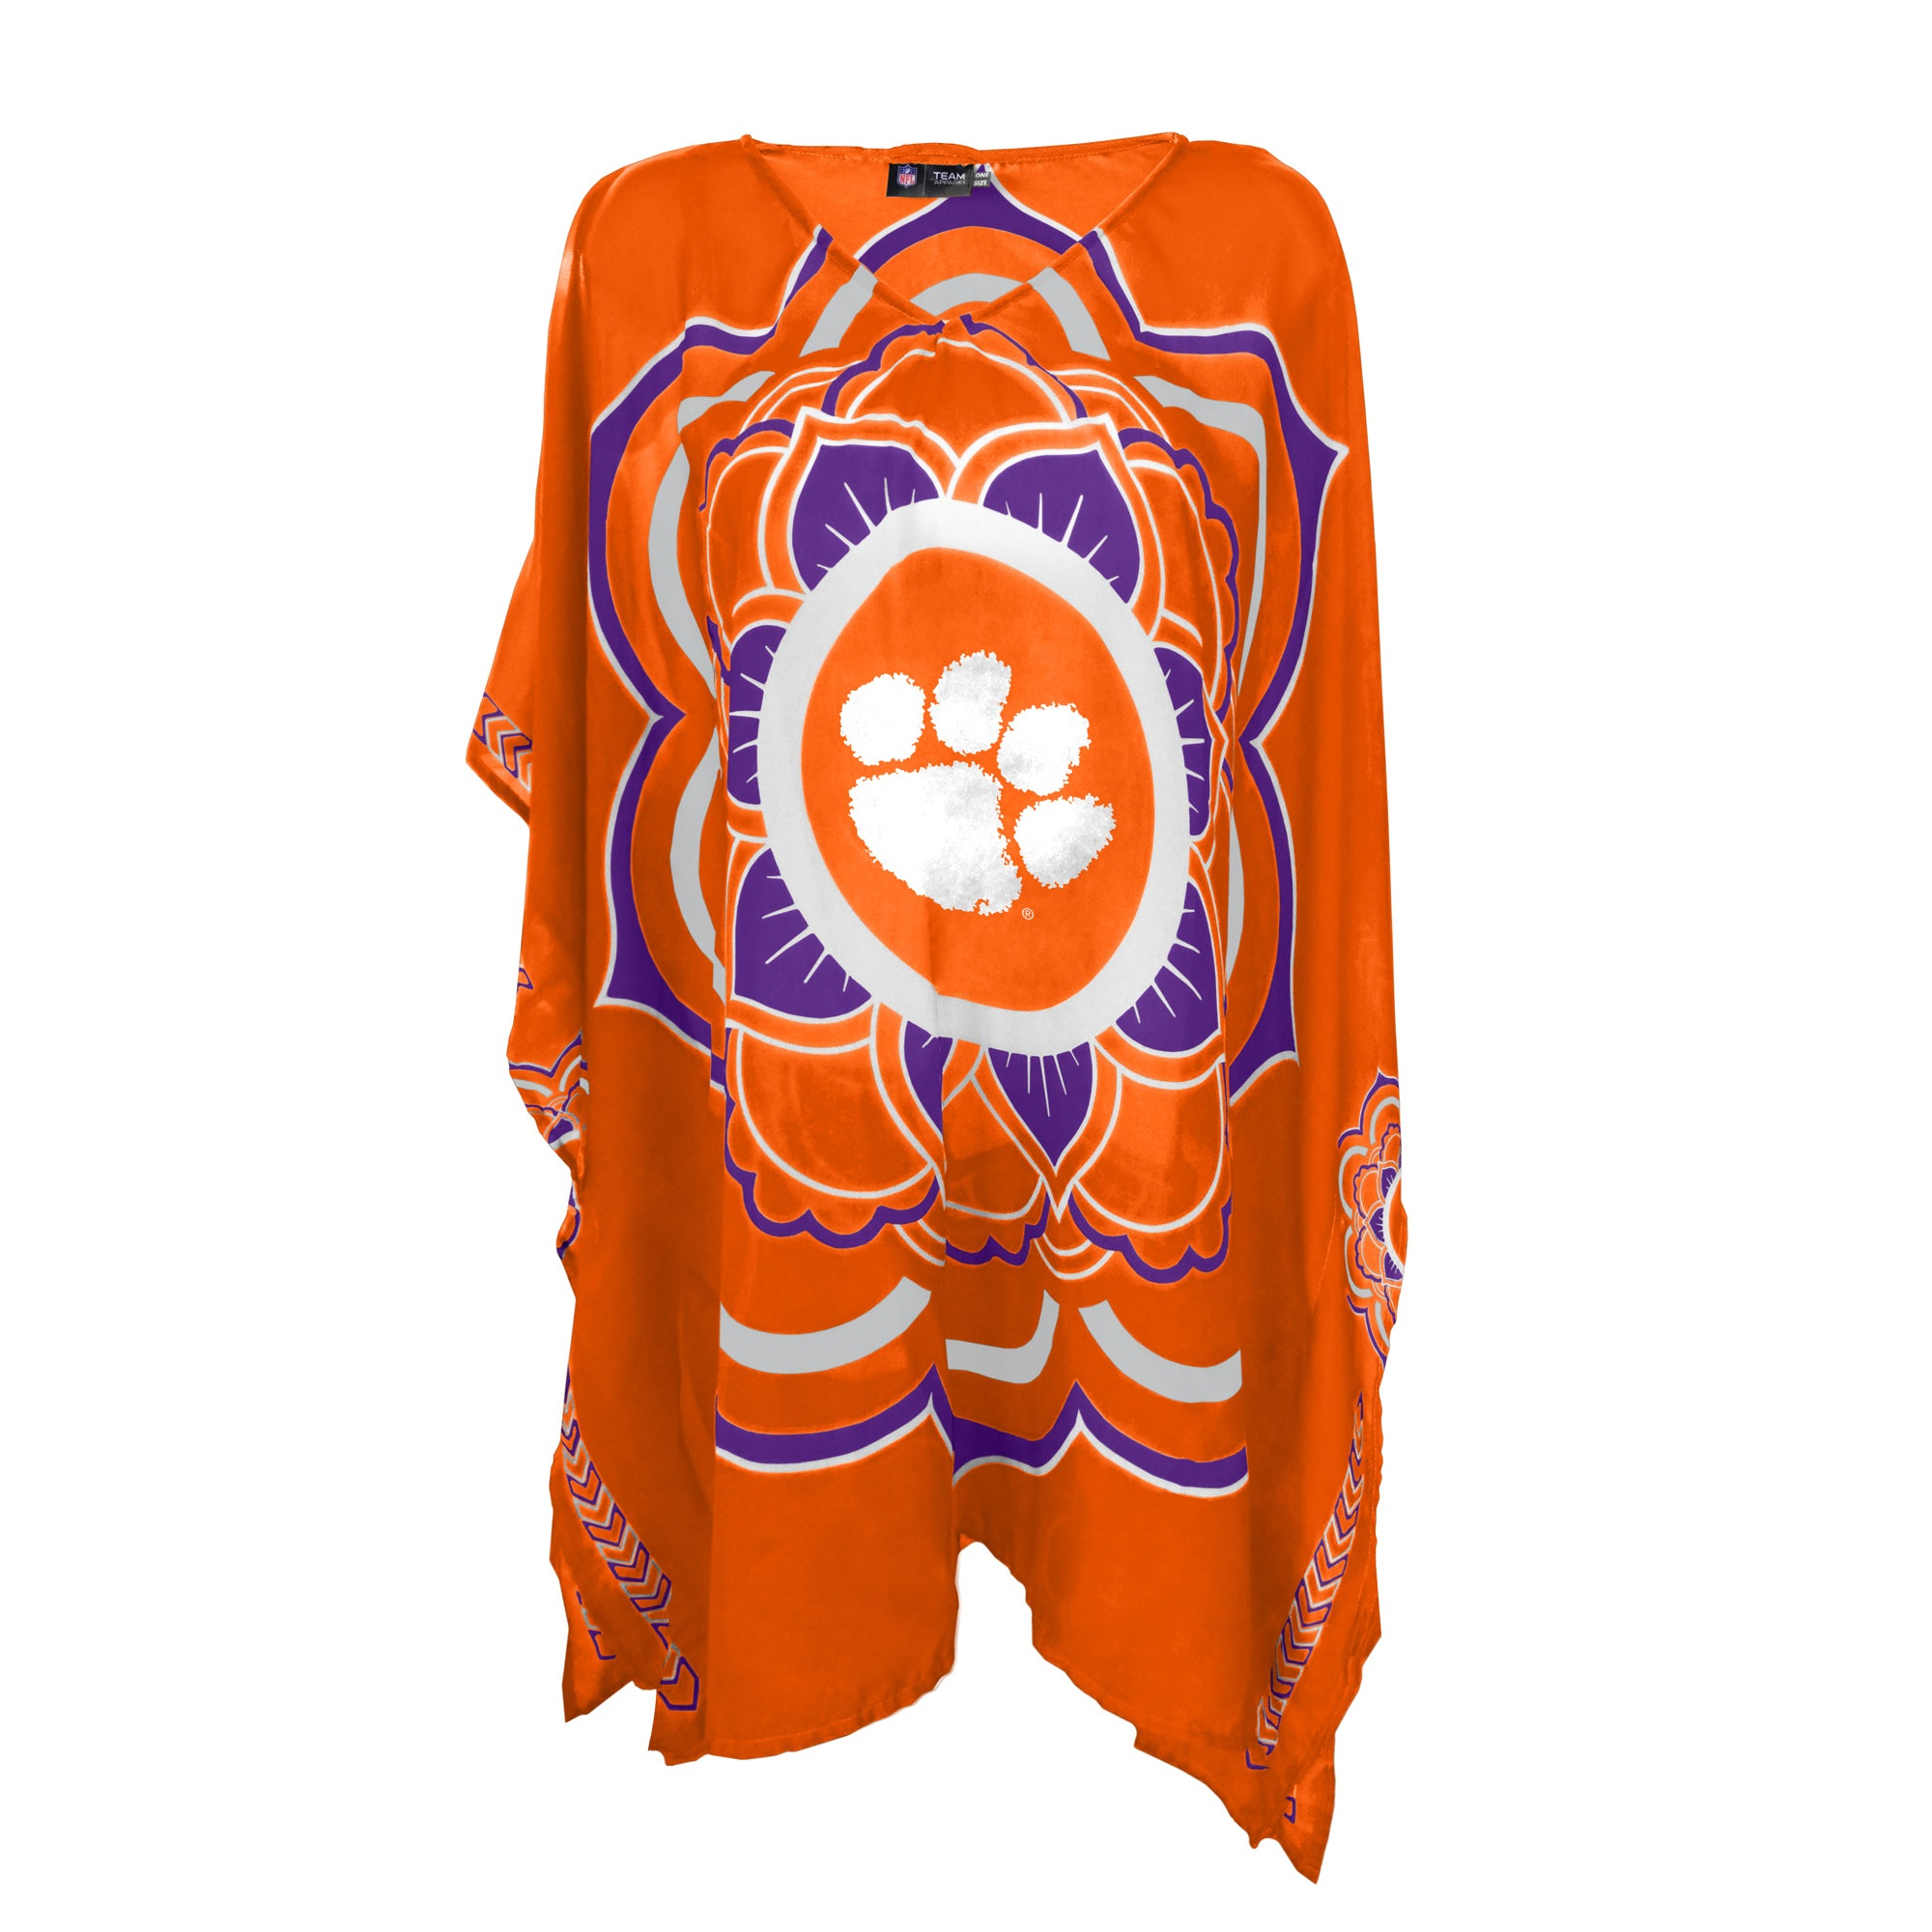 LIMITED EDITION, OFFICIALLY LICENSED CLEMSON CAFTAN